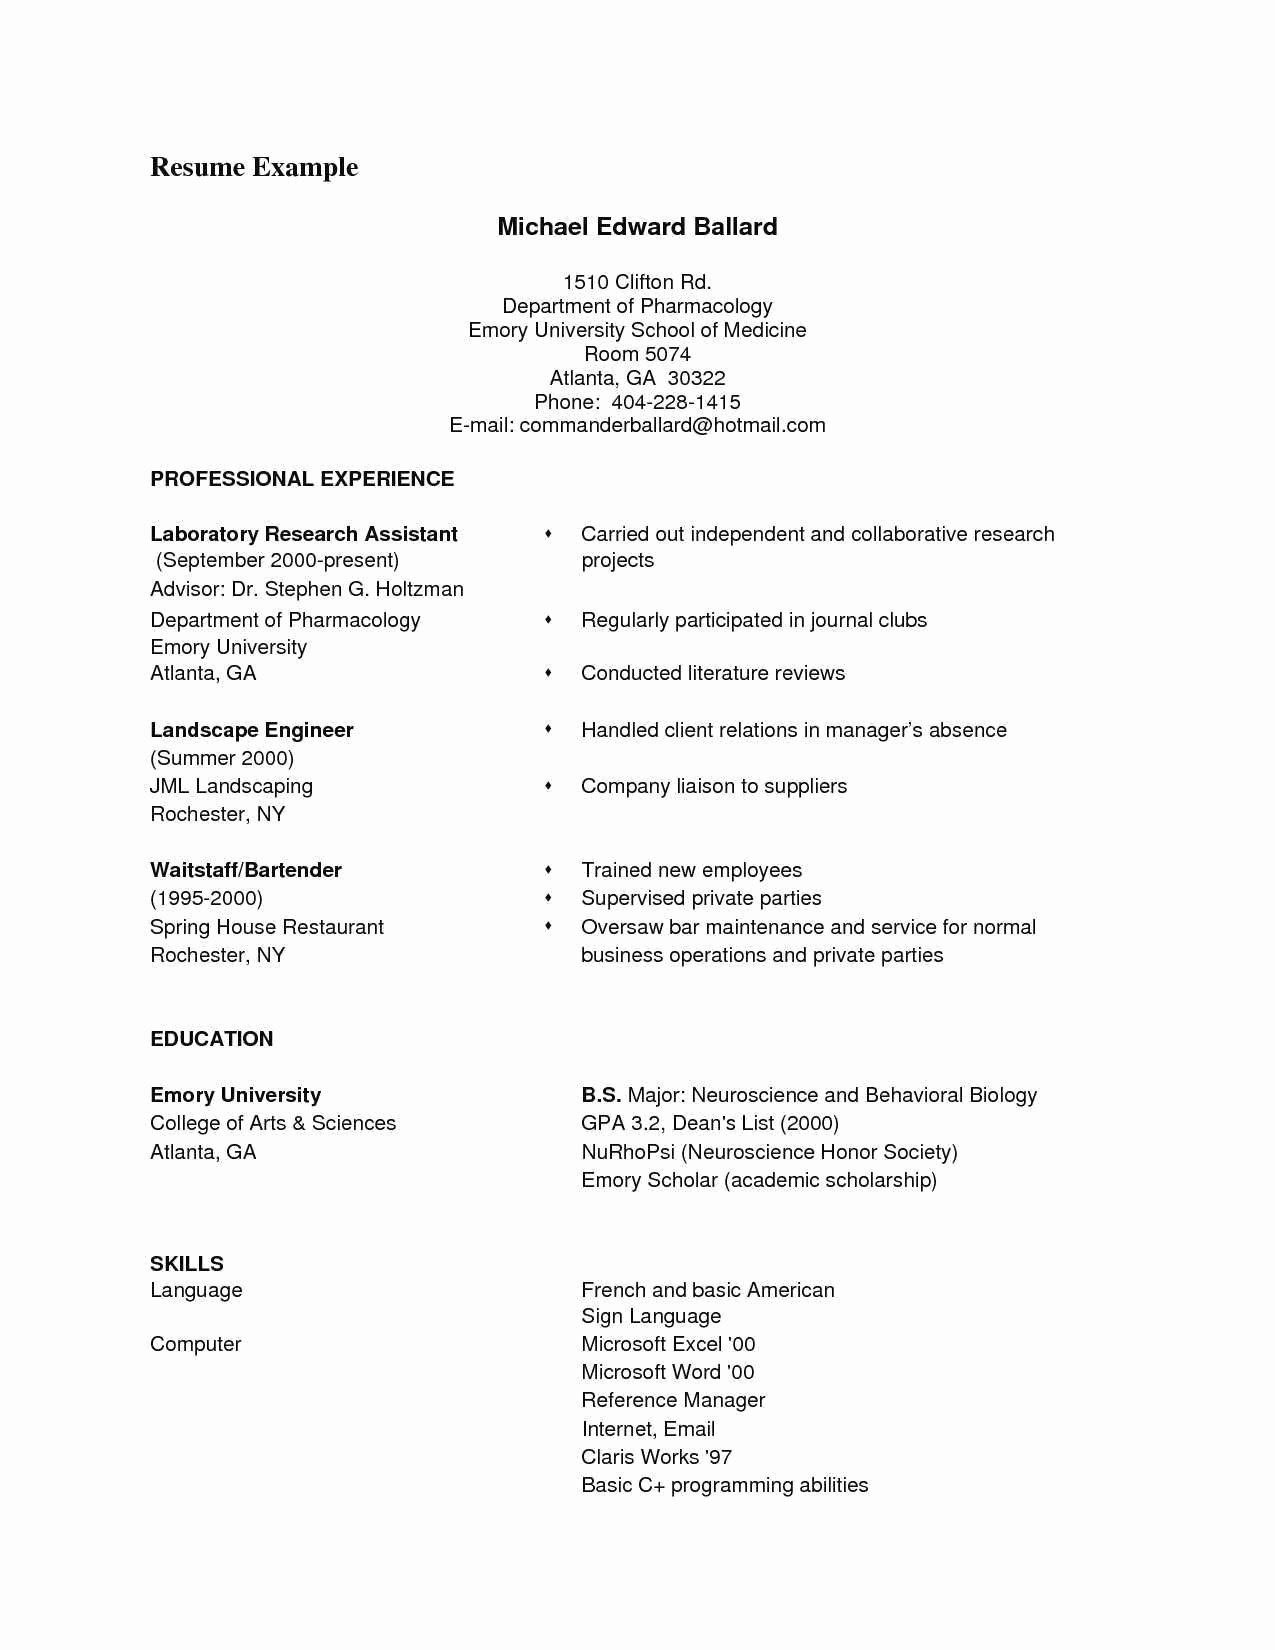 Resumes On Microsoft Word 2010 Lovely How to Do A Resume Microsoft Word 2010